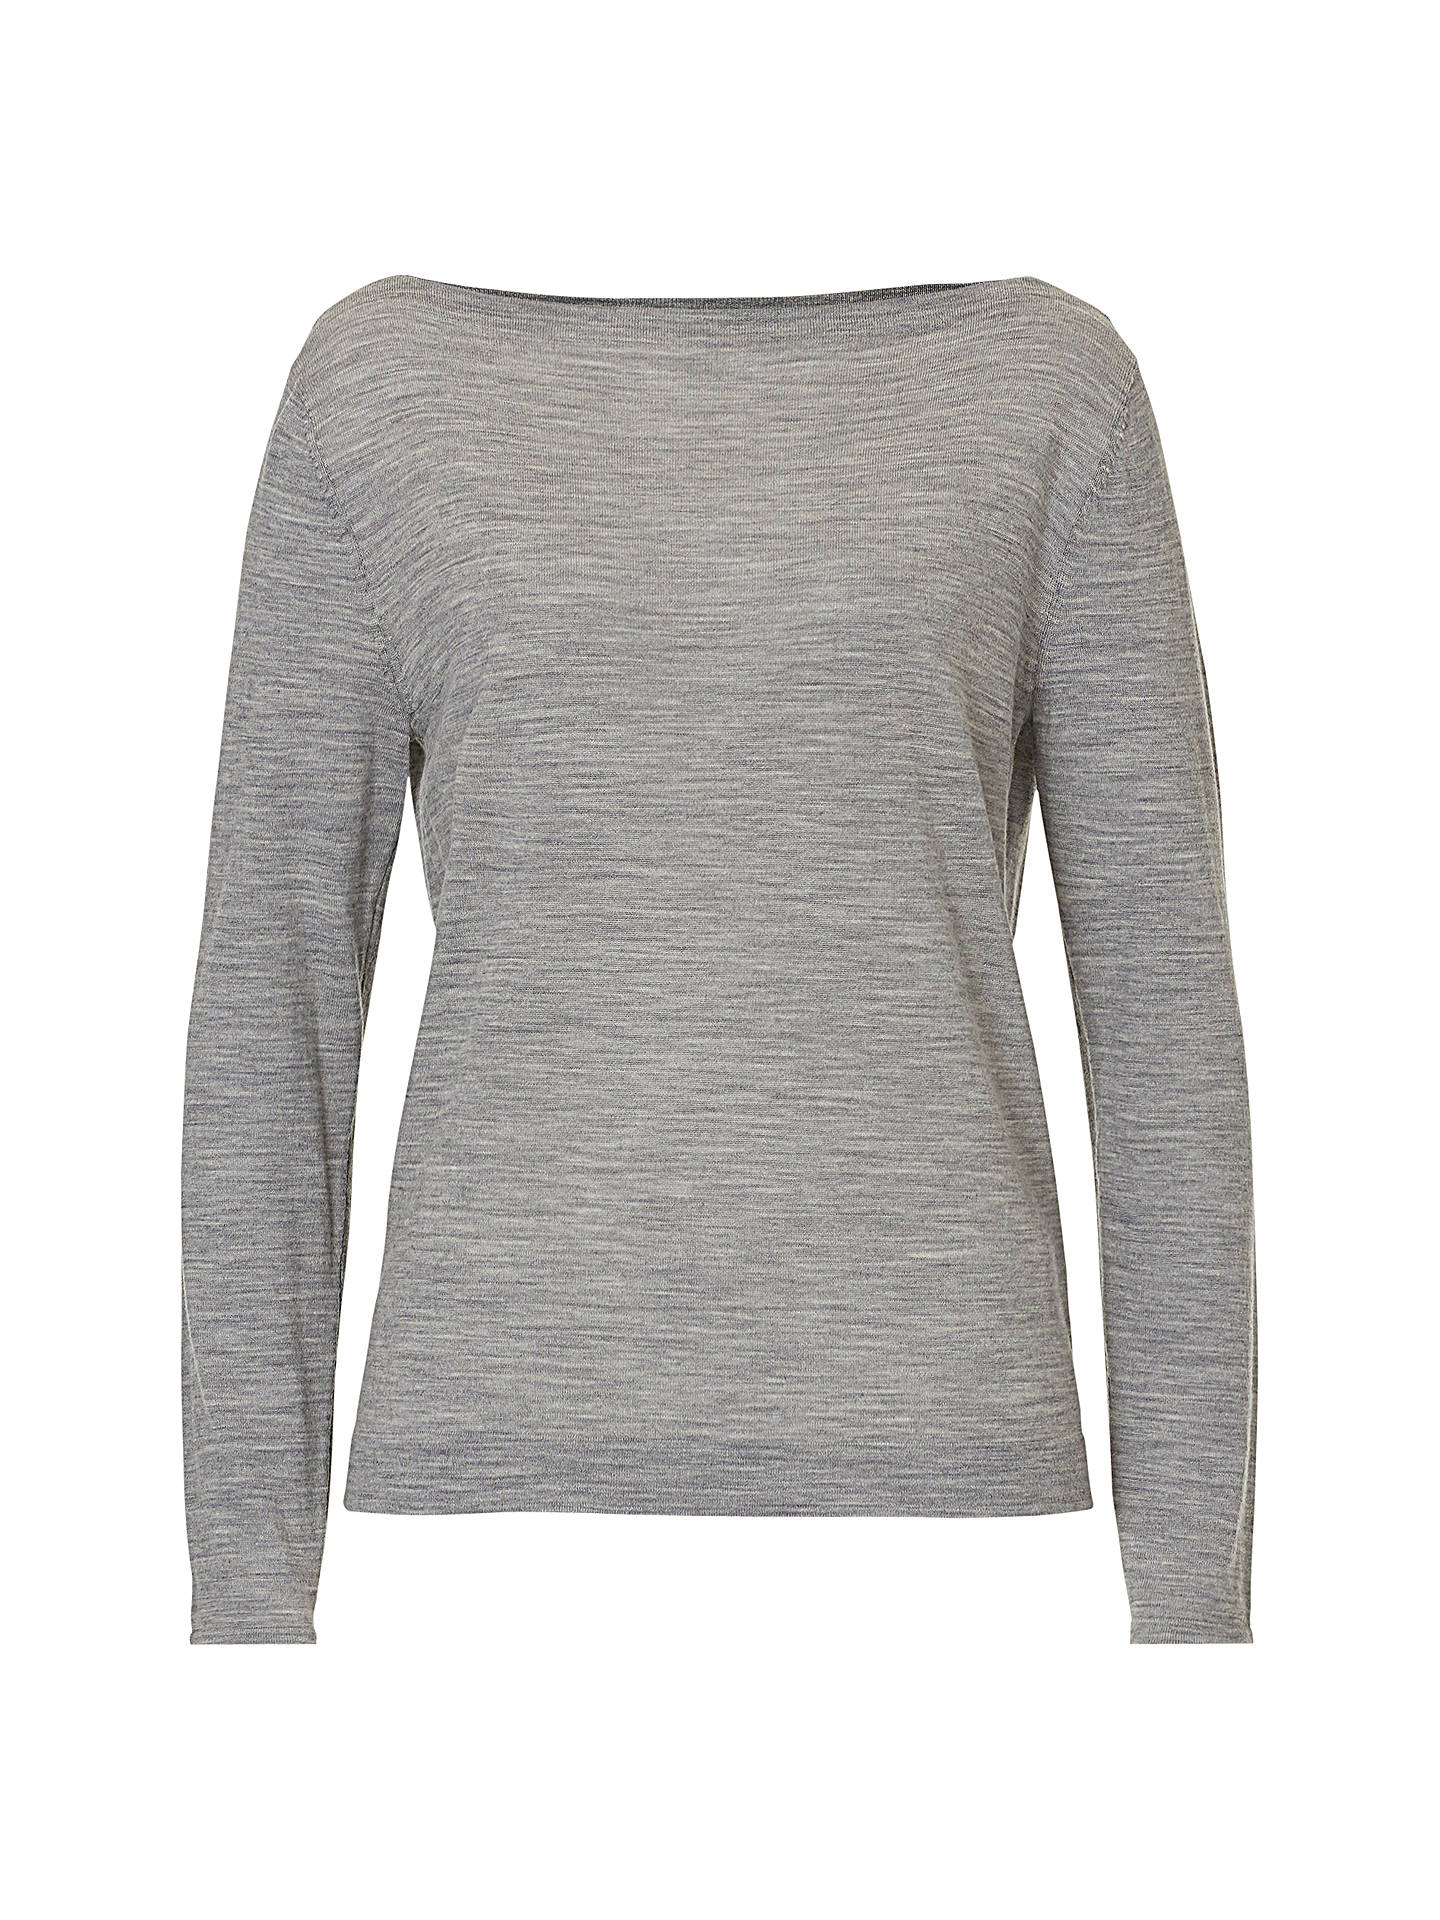 BuyBetty & Co. Fine Knit Top, Light Anthracite Melange, 8 Online at johnlewis.com